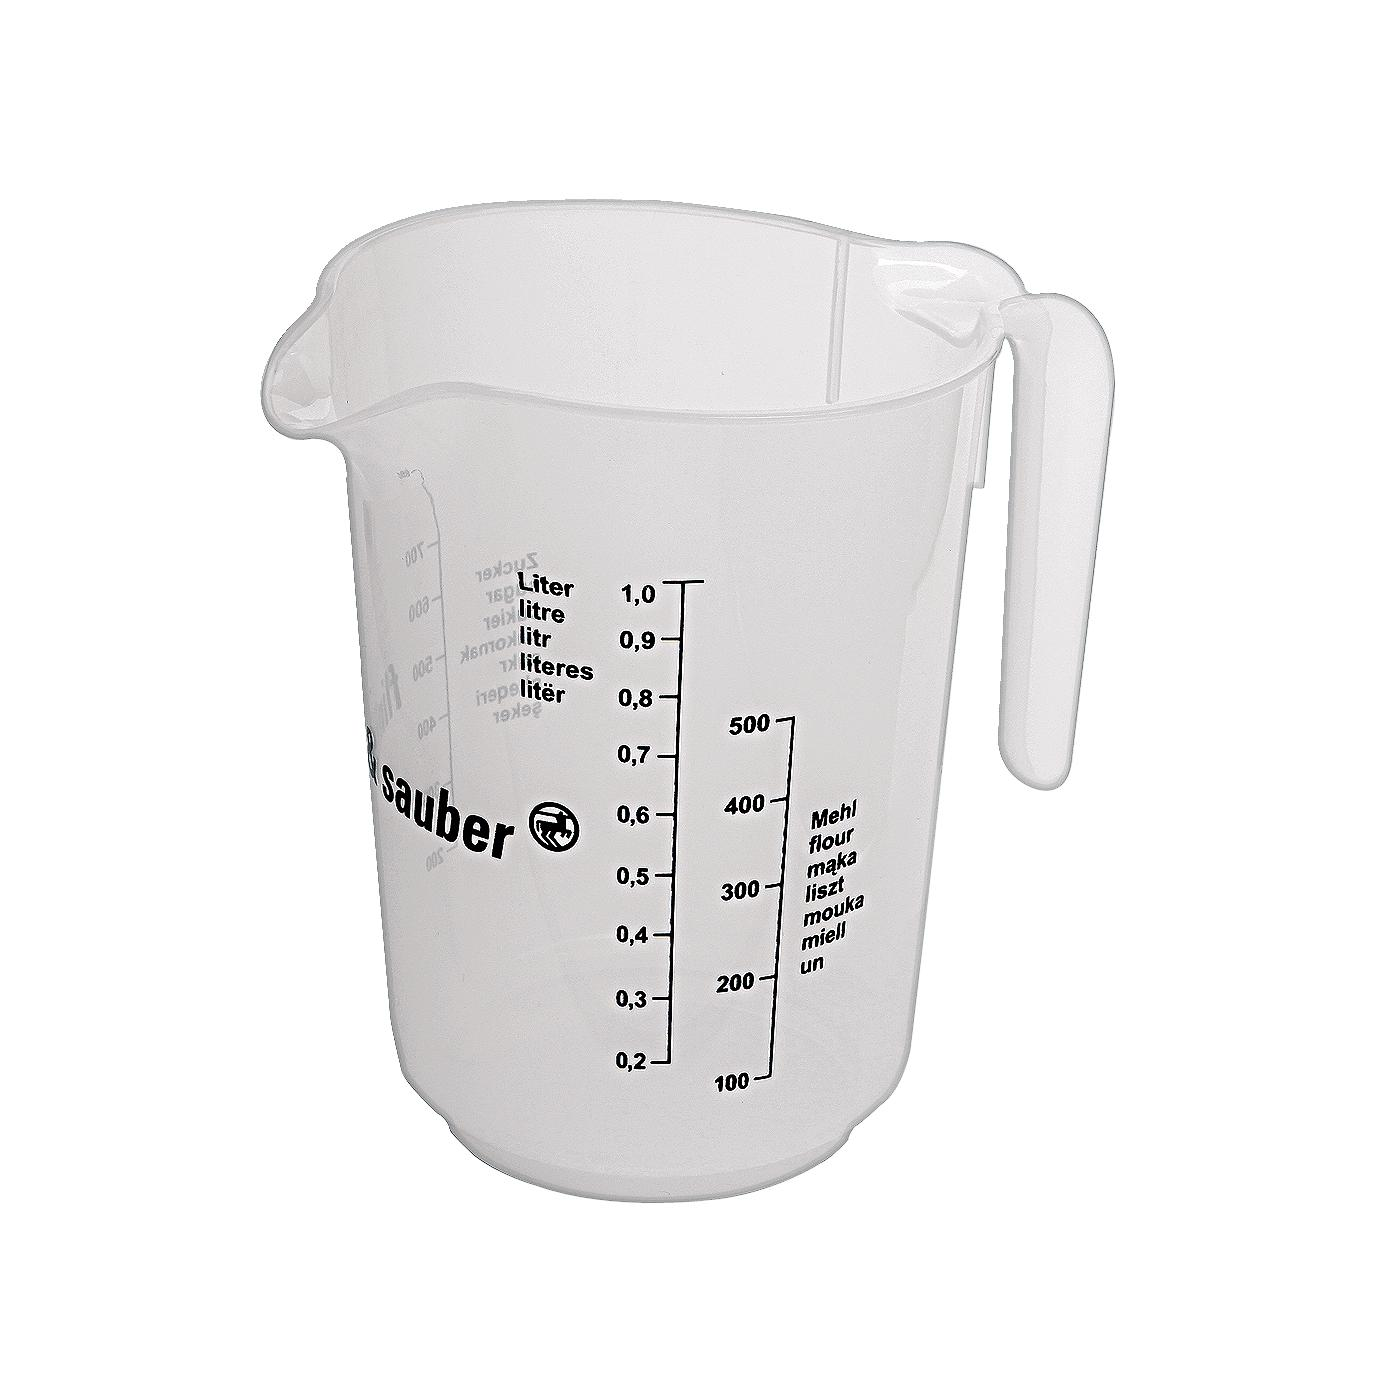 Messbecher Cup Measuring Cup With Messbecher Cup Messbecher Ml